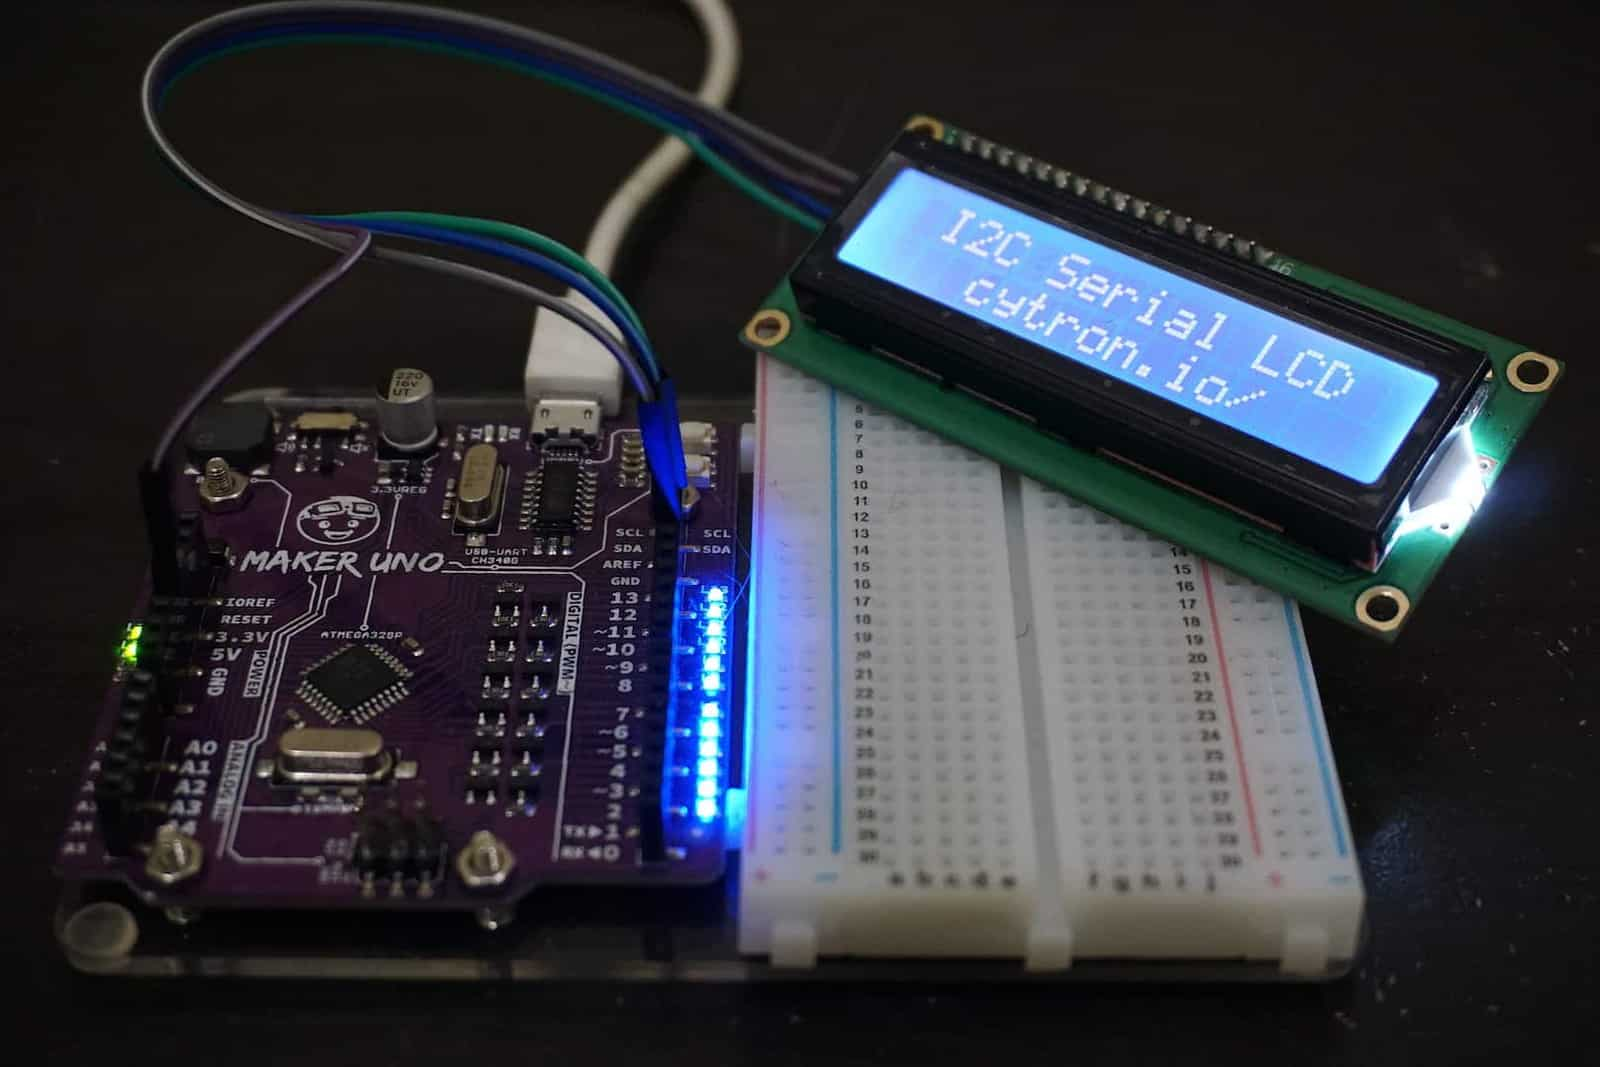 Getting Started of I2C Serial LCD with Arduino (Maker UNO